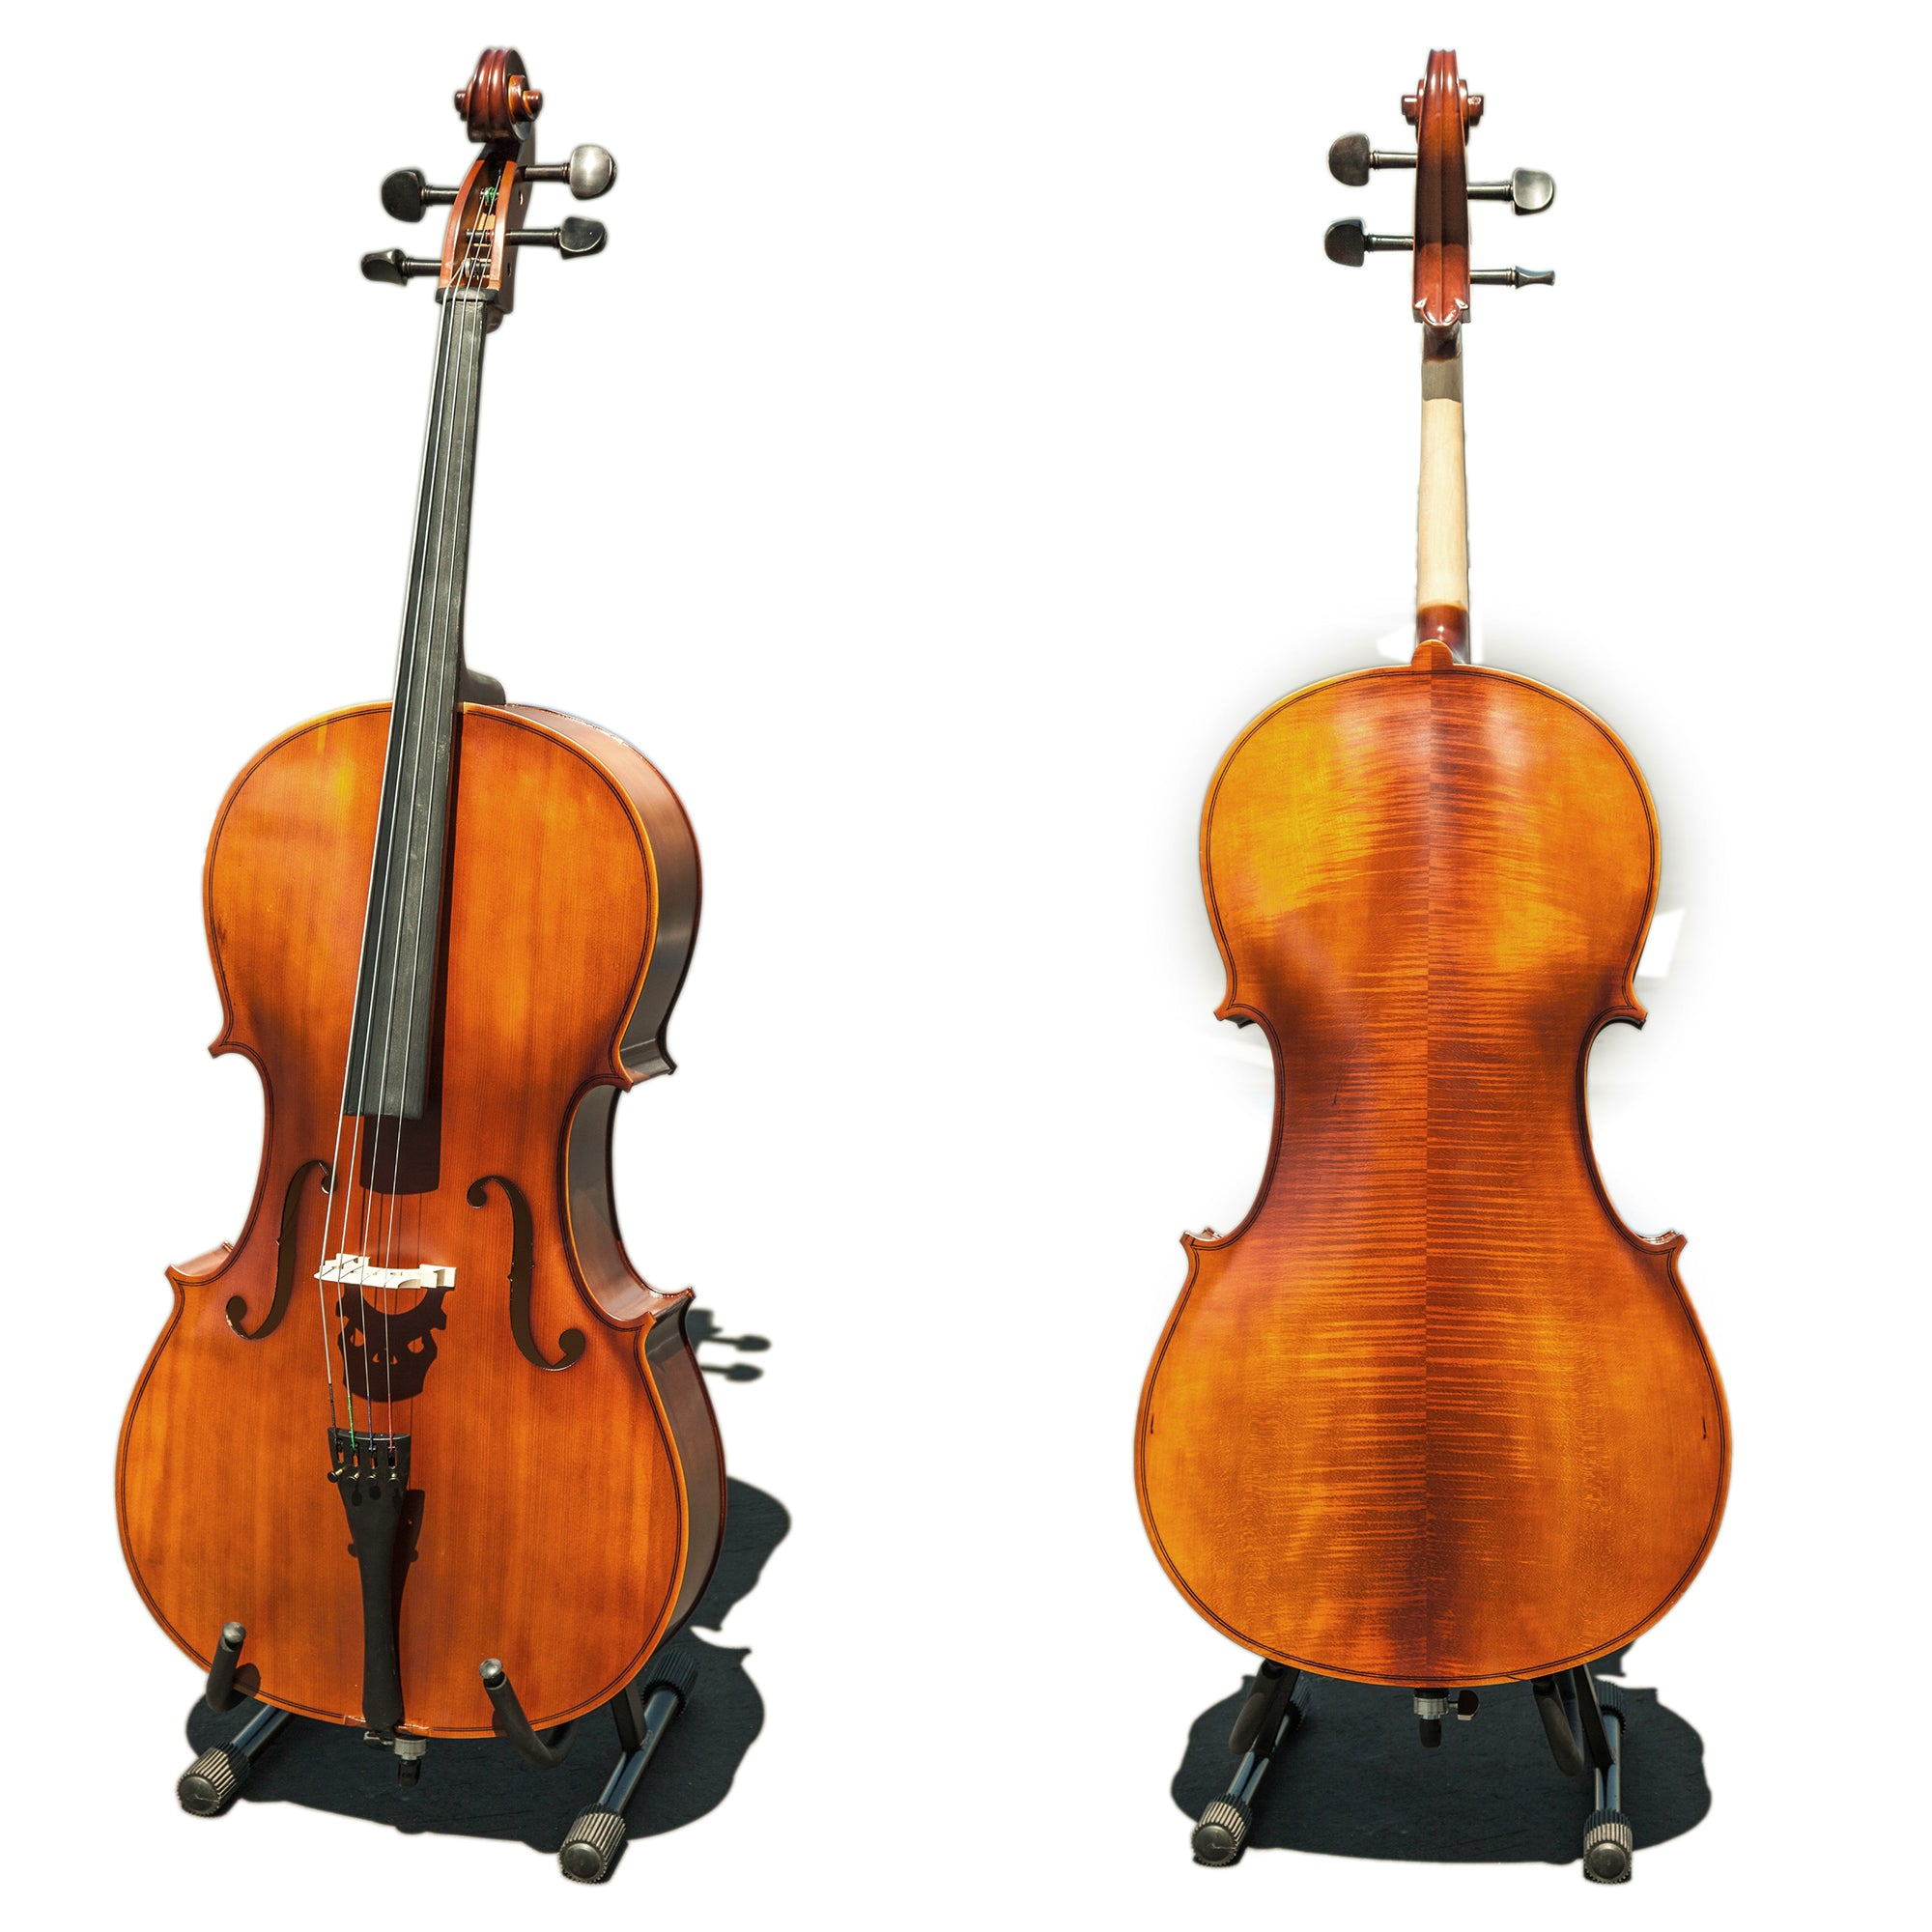 Paititi String Steel Core Beginner Level C String 1//4 Size Cello High Quality